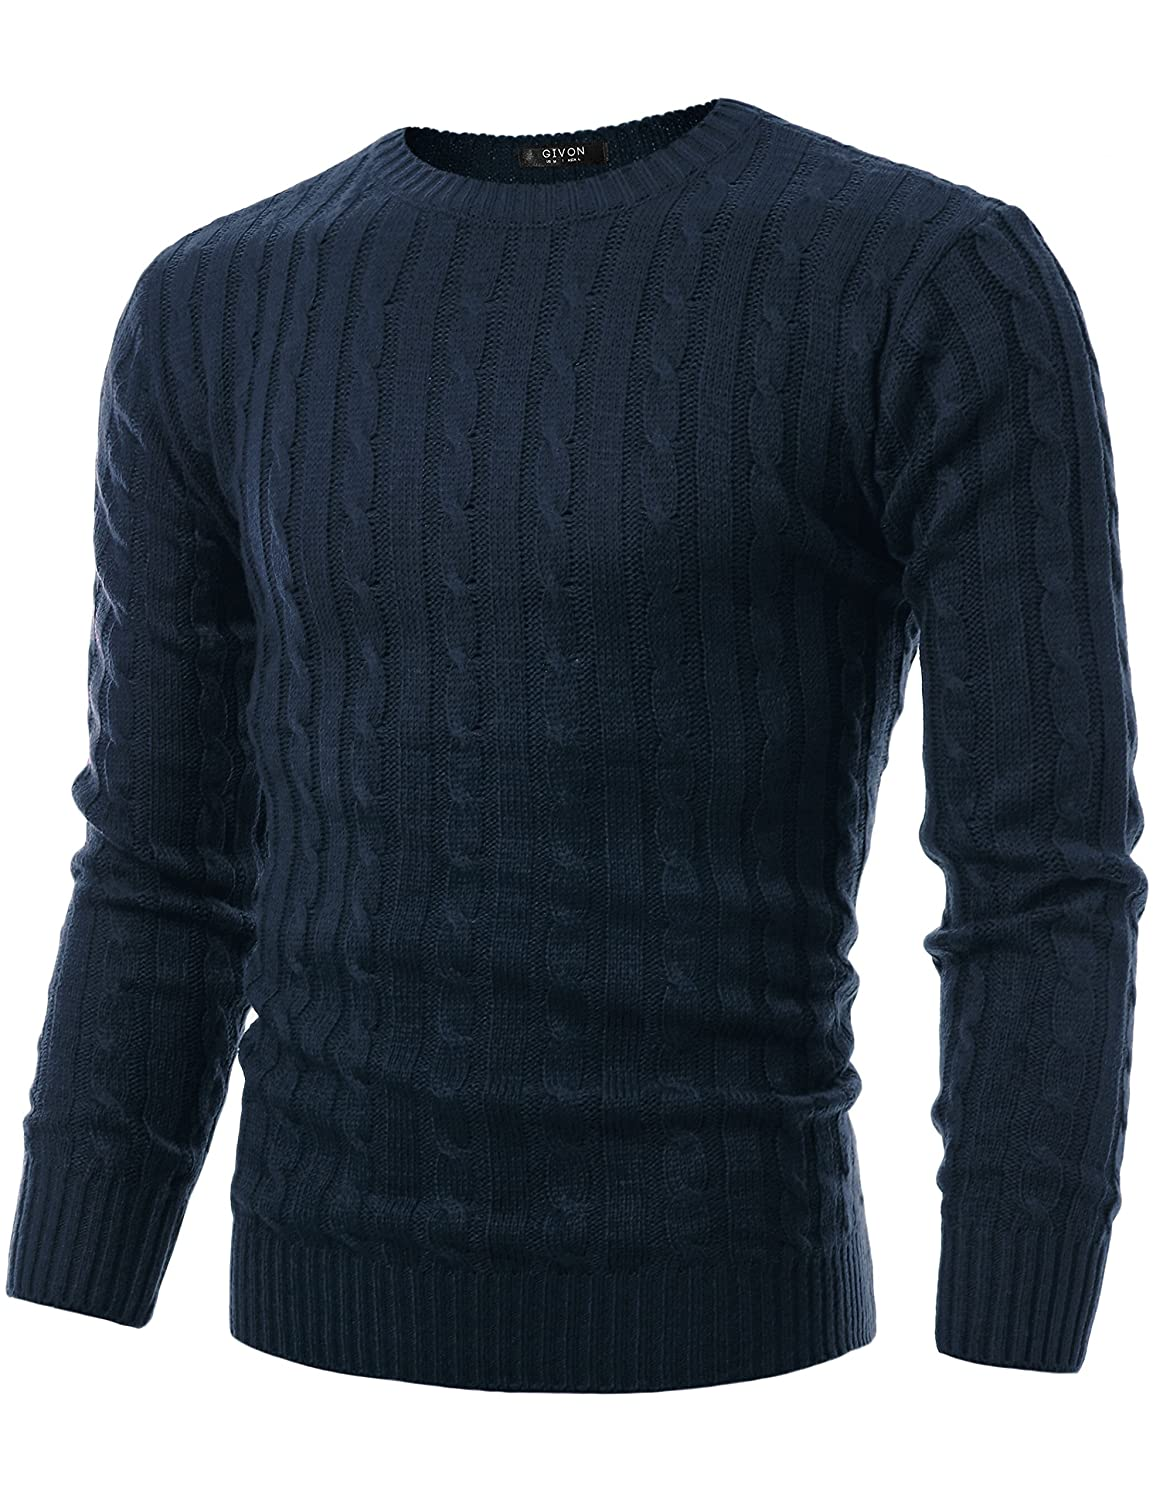 GIVON Mens Slim Fit Cable Knit Long Sleeve Crew-Neck Pullover Sweater